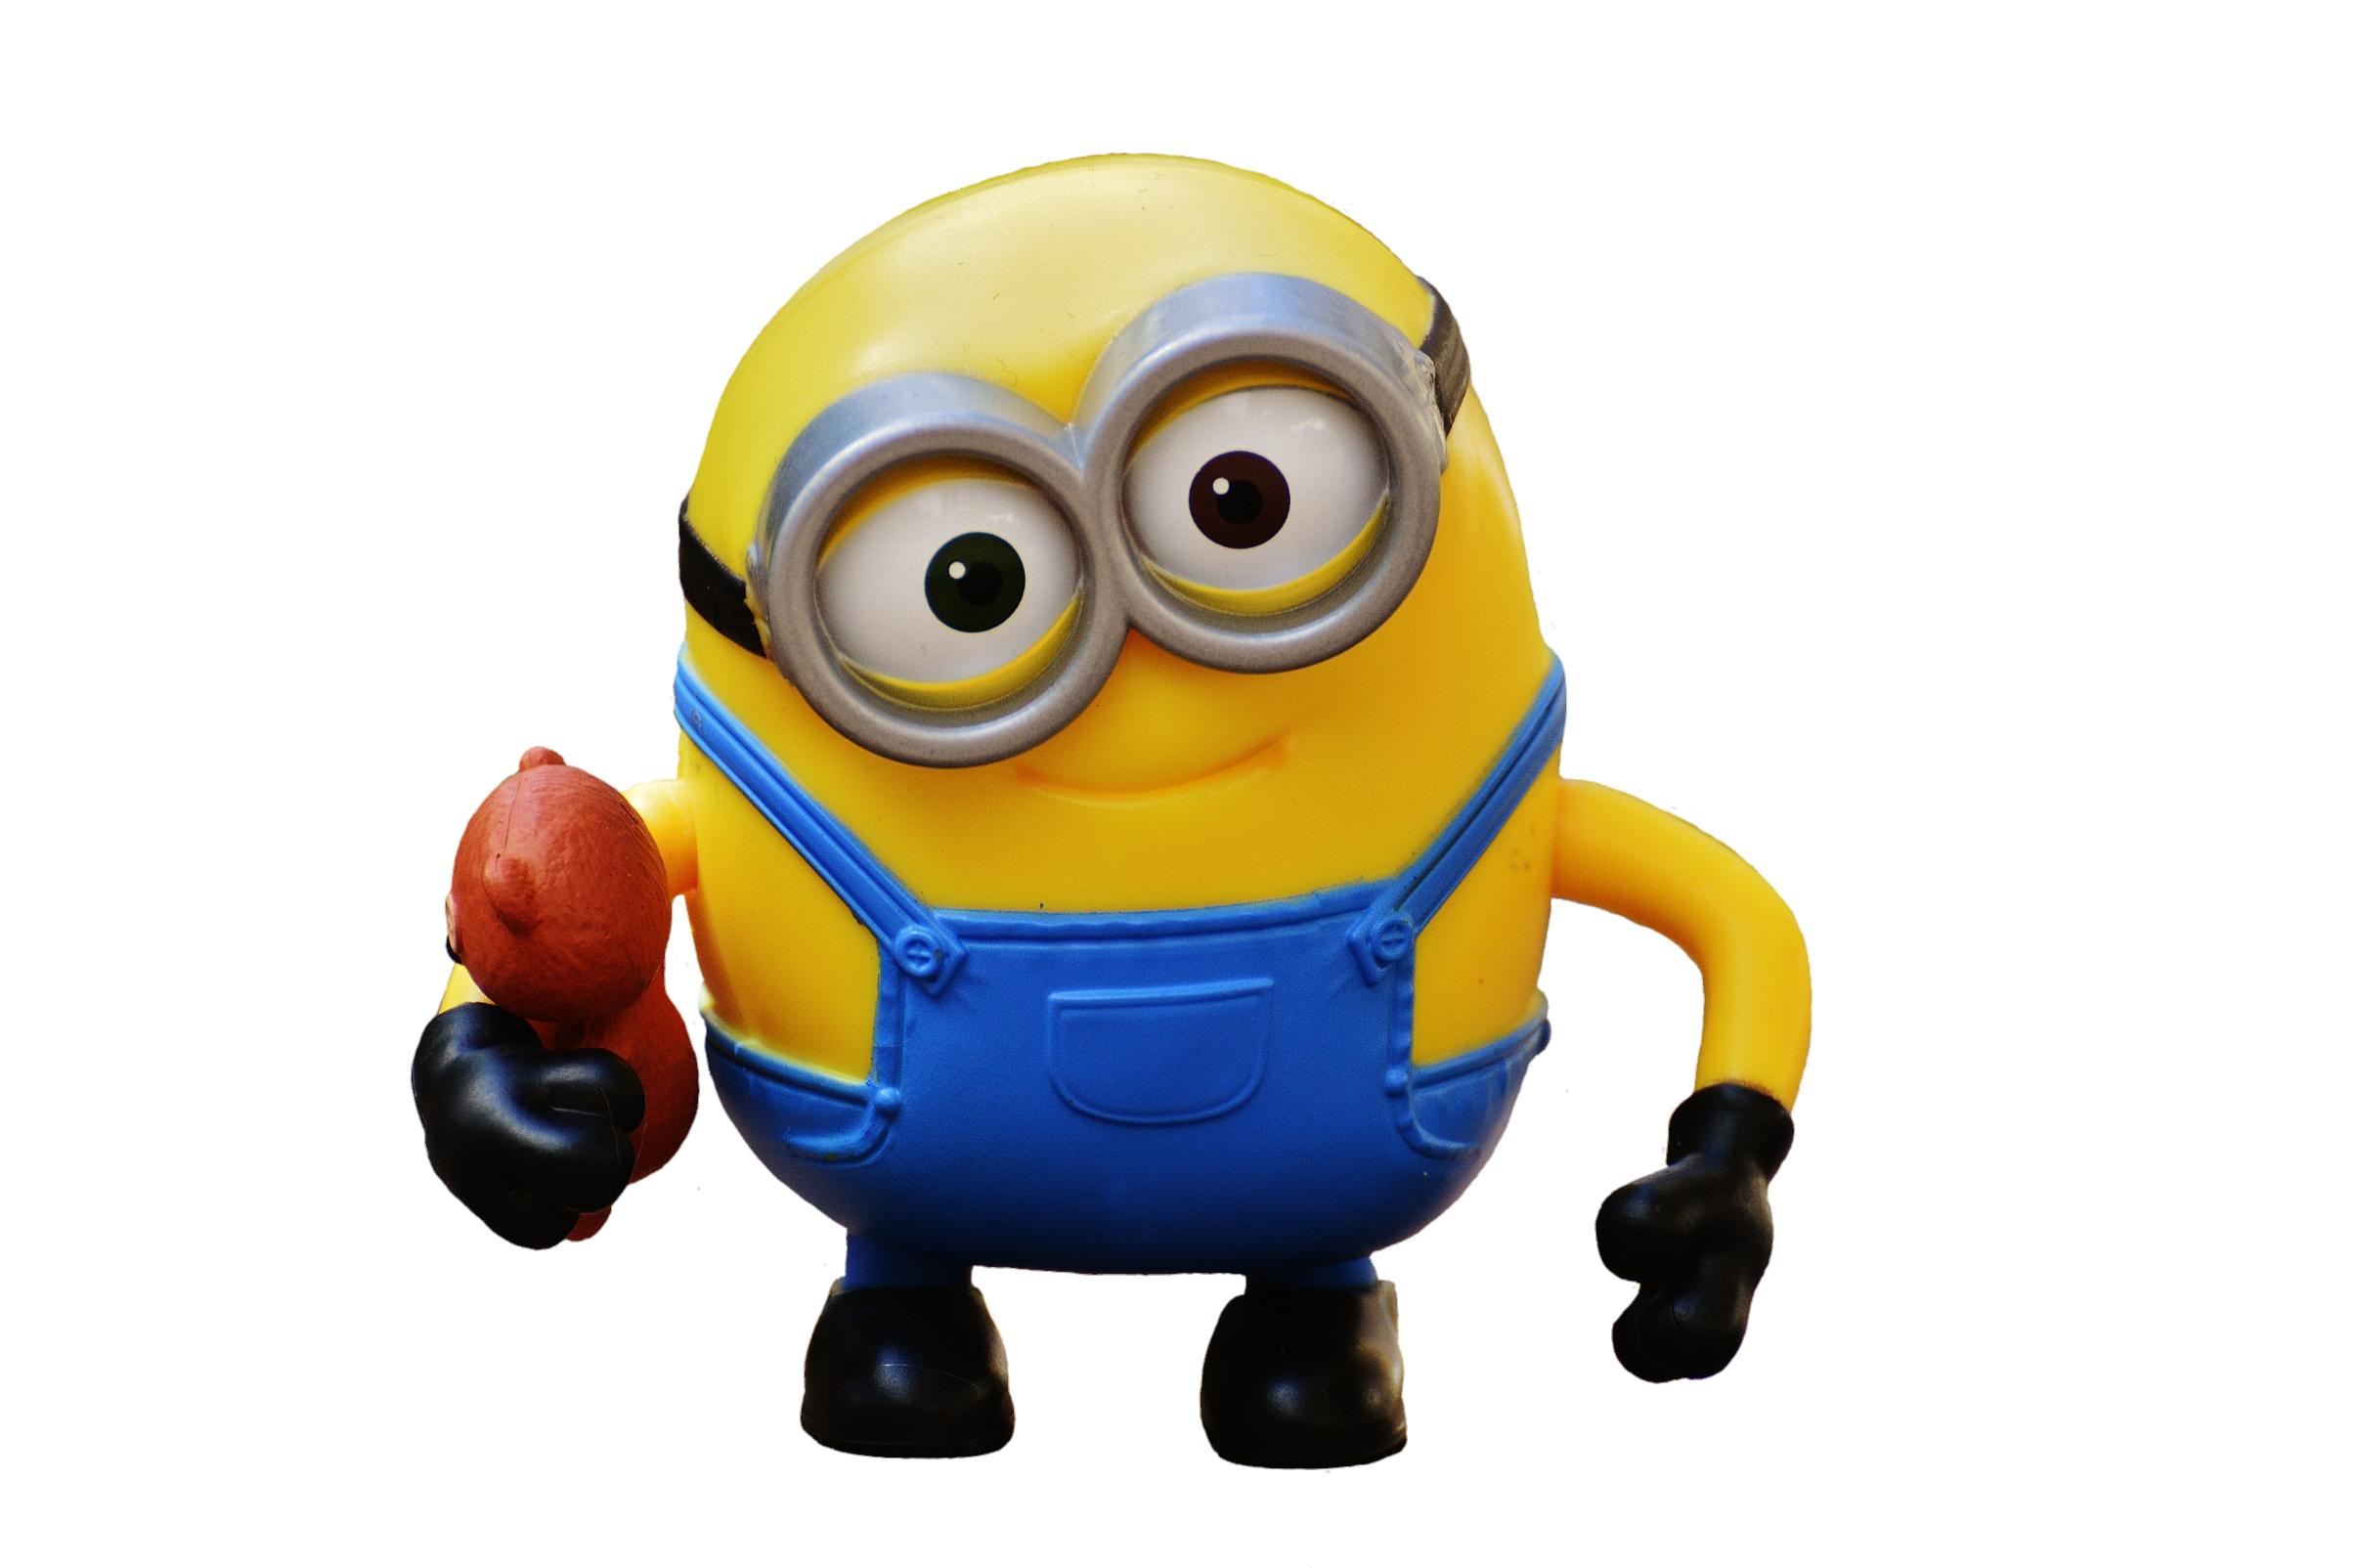 Minion Toy PNG Image